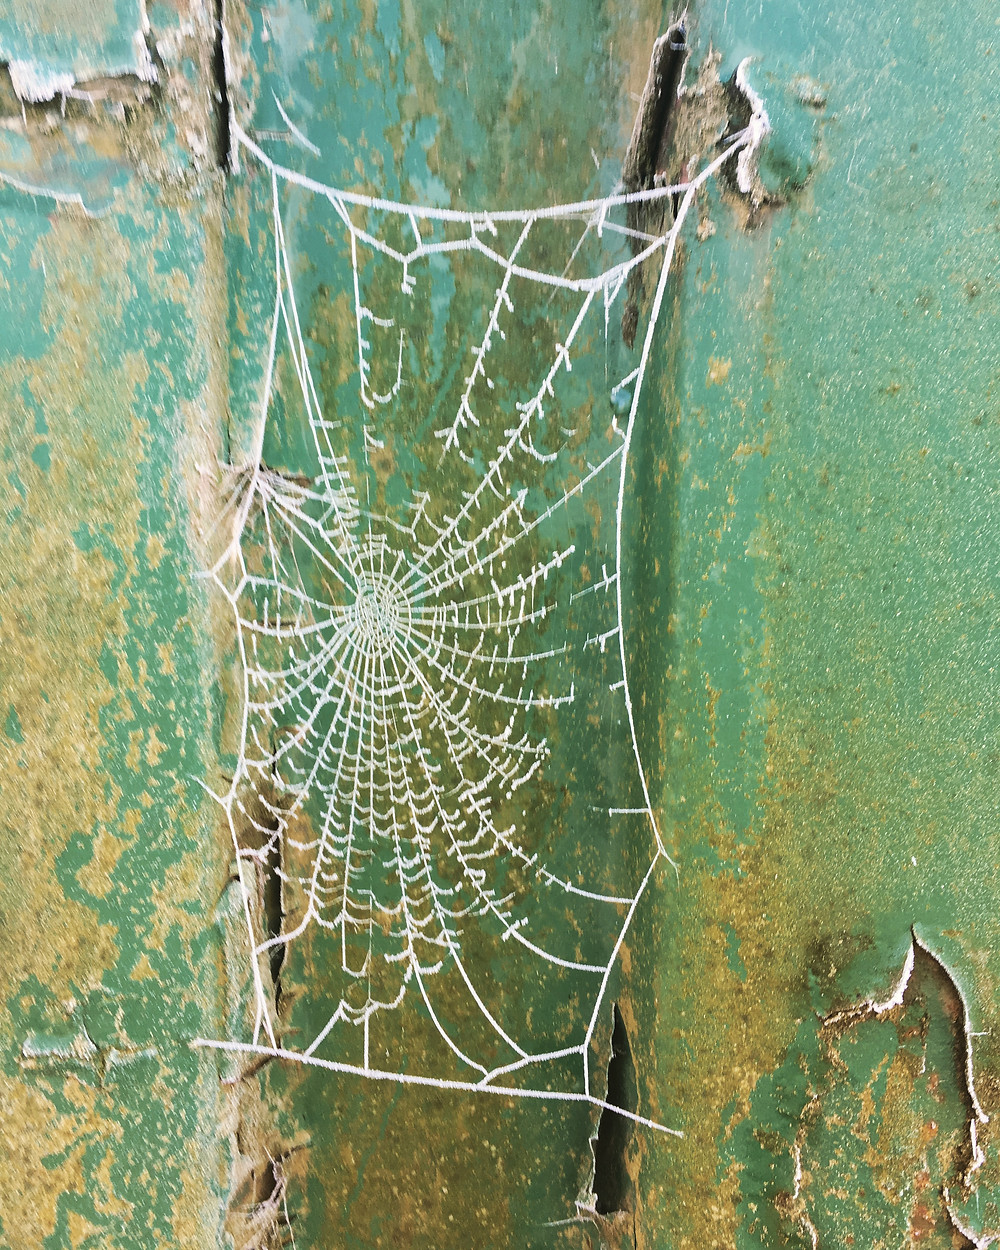 Ice spun lace spiders web